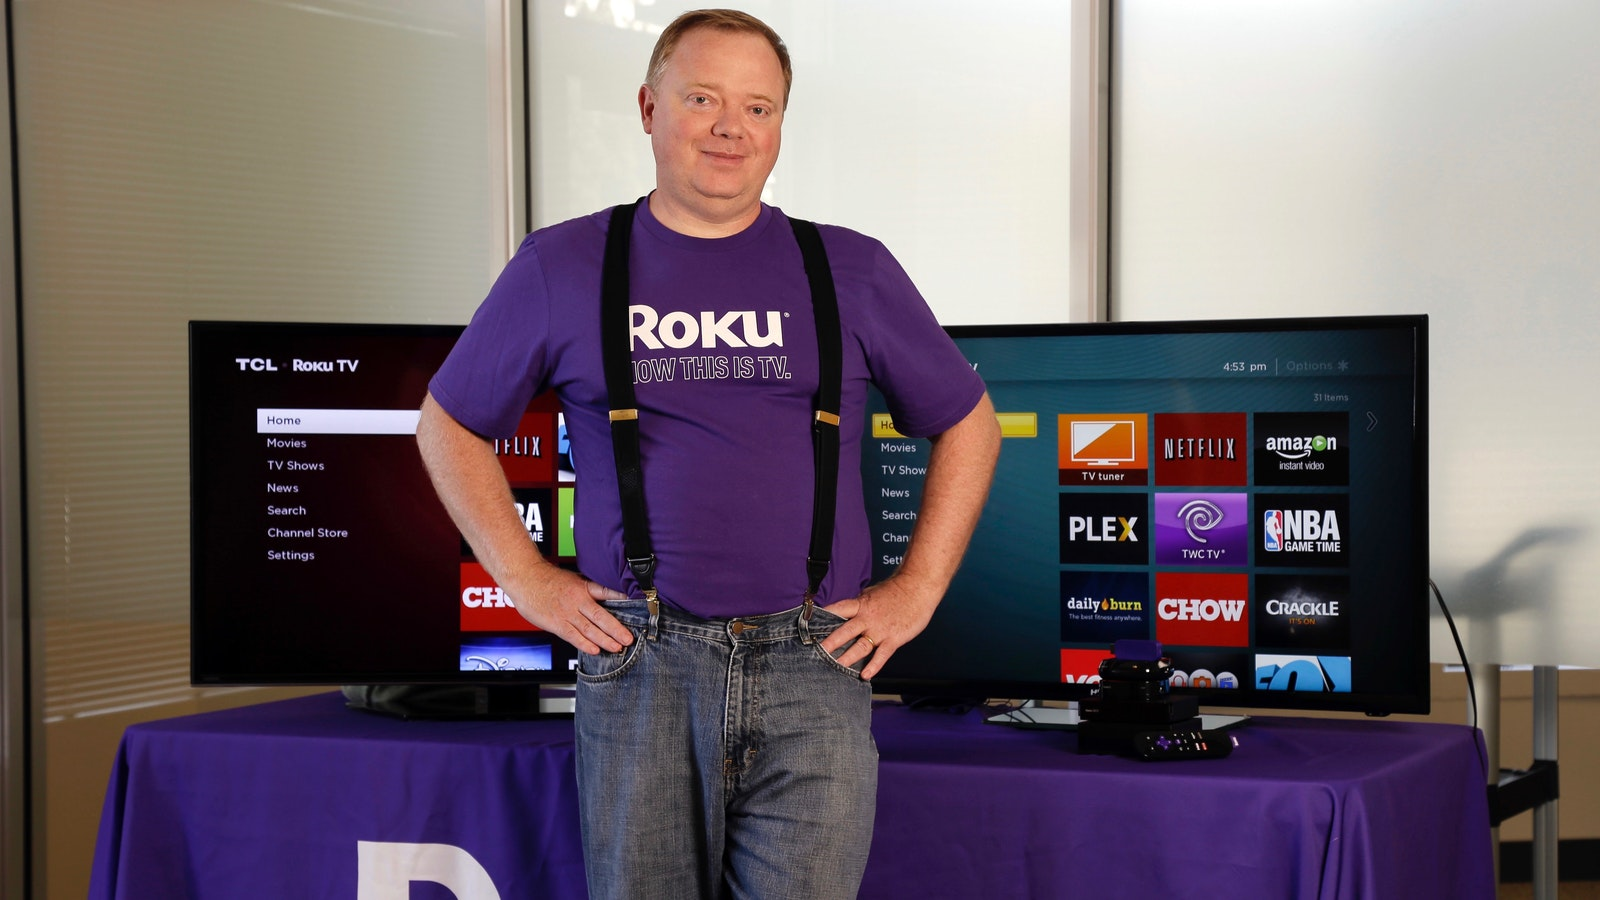 Roku CEO Anthony Wood. Photo by AP